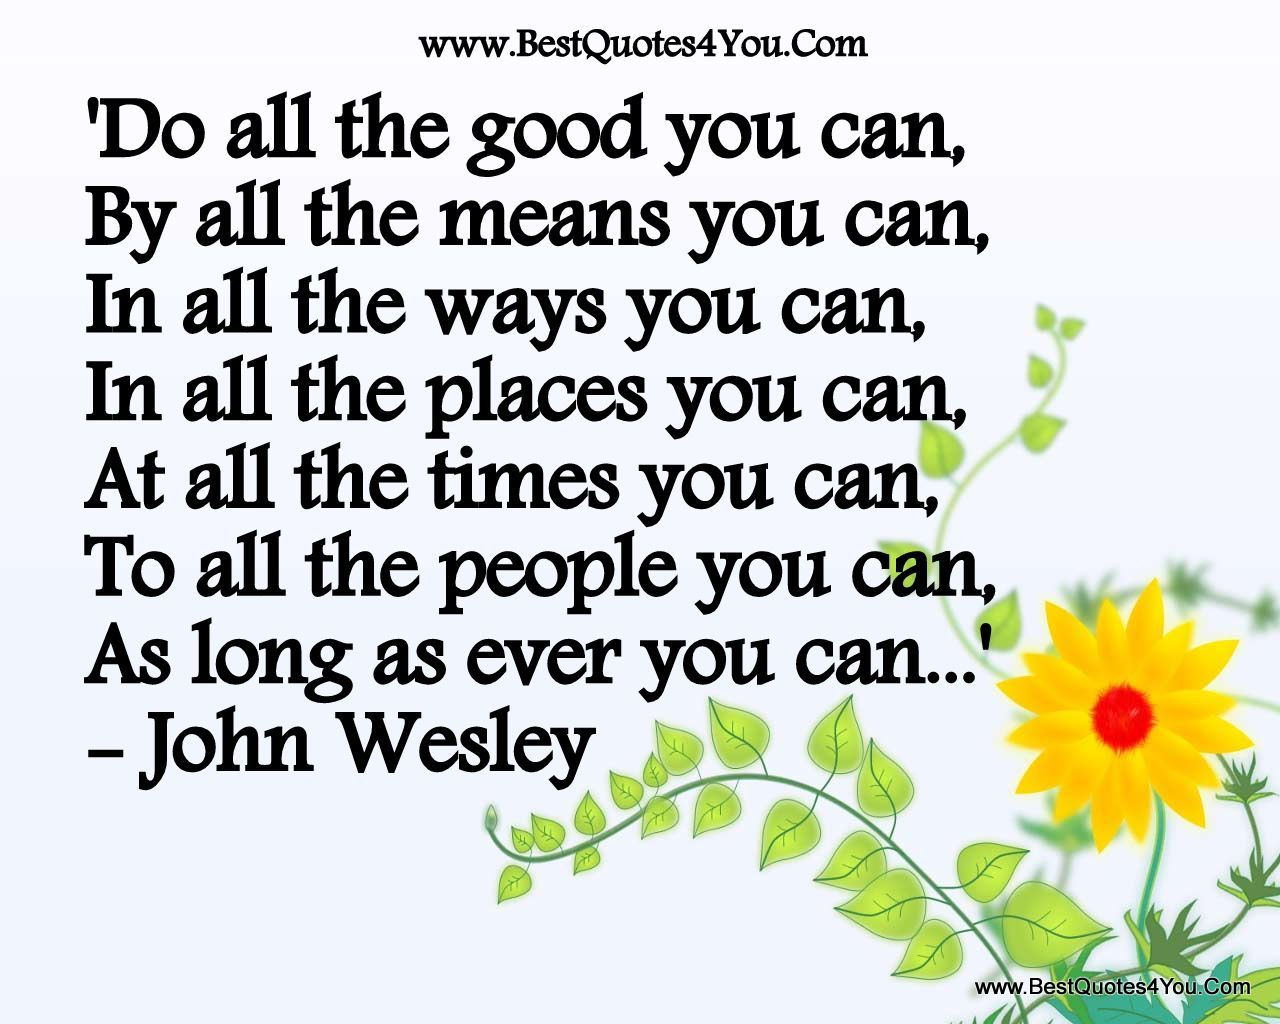 Do All The Good You Can John Wesley Do All The Good You Can By